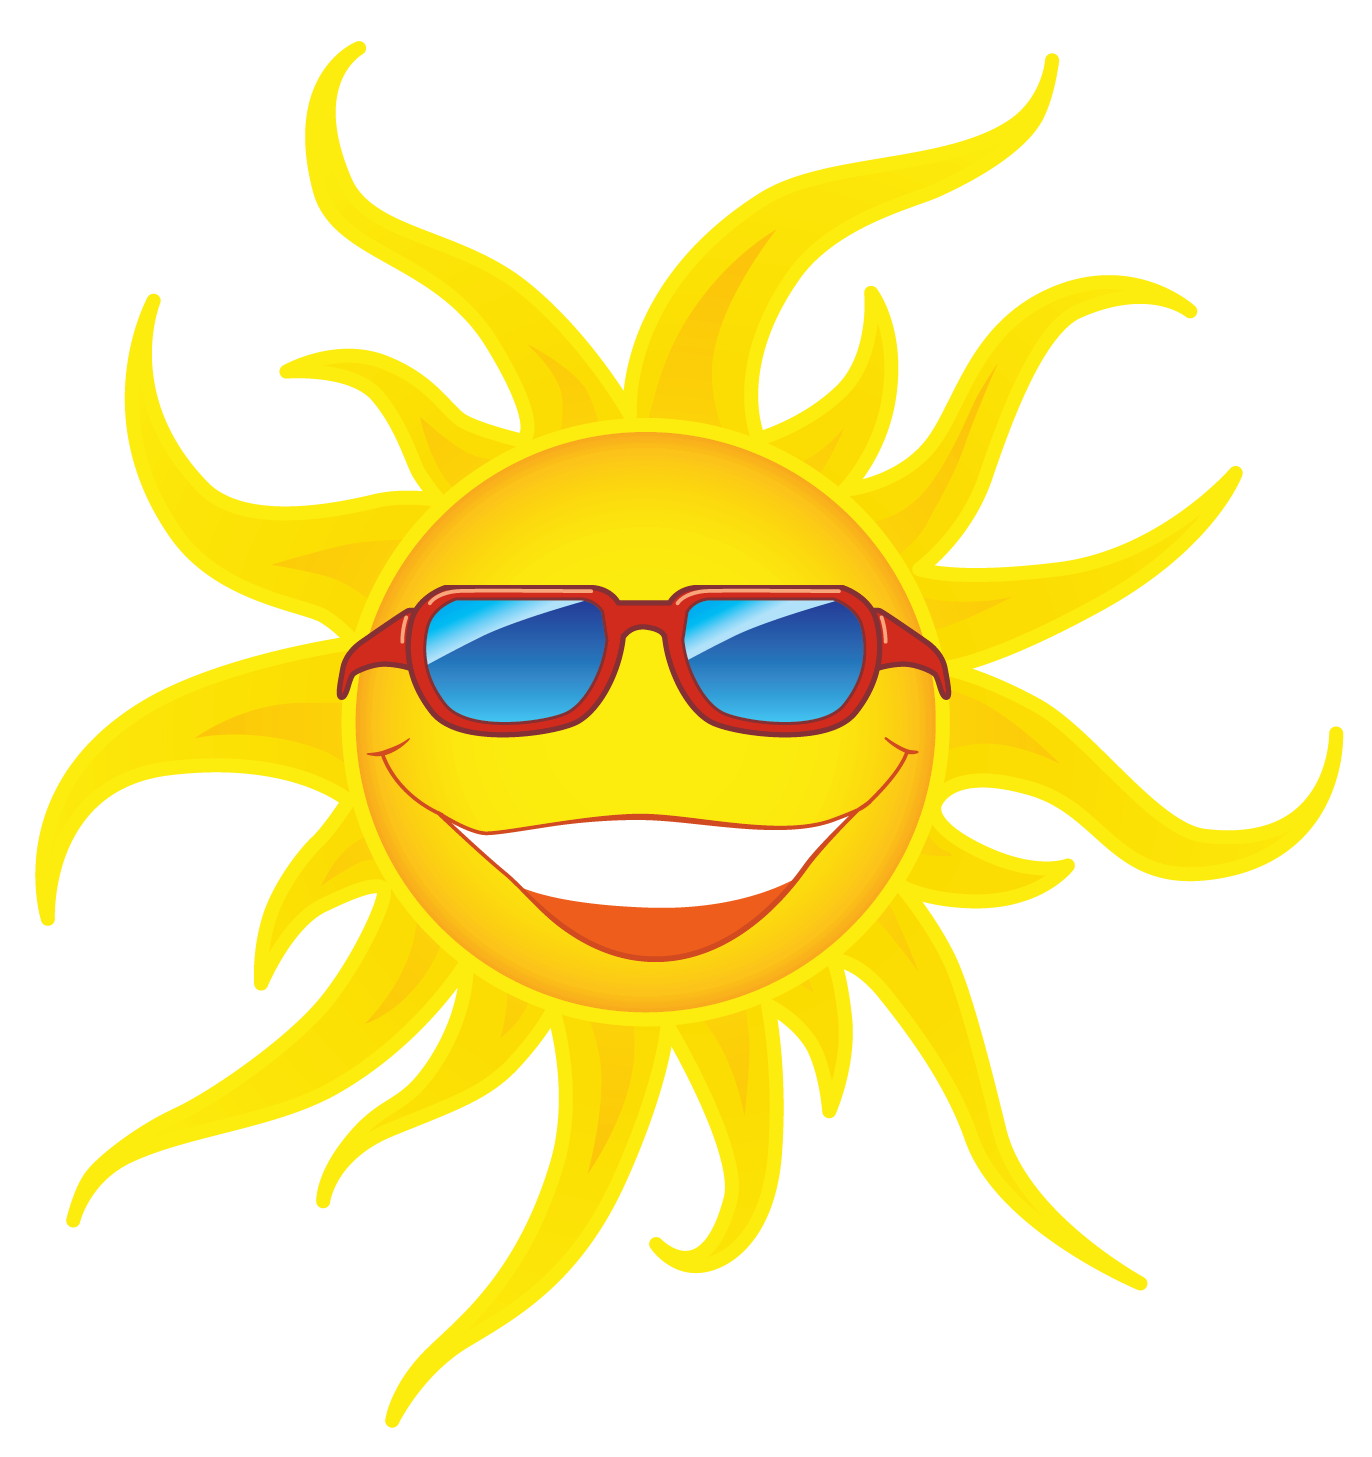 Sun with red transparent. Smiley clipart sunglasses